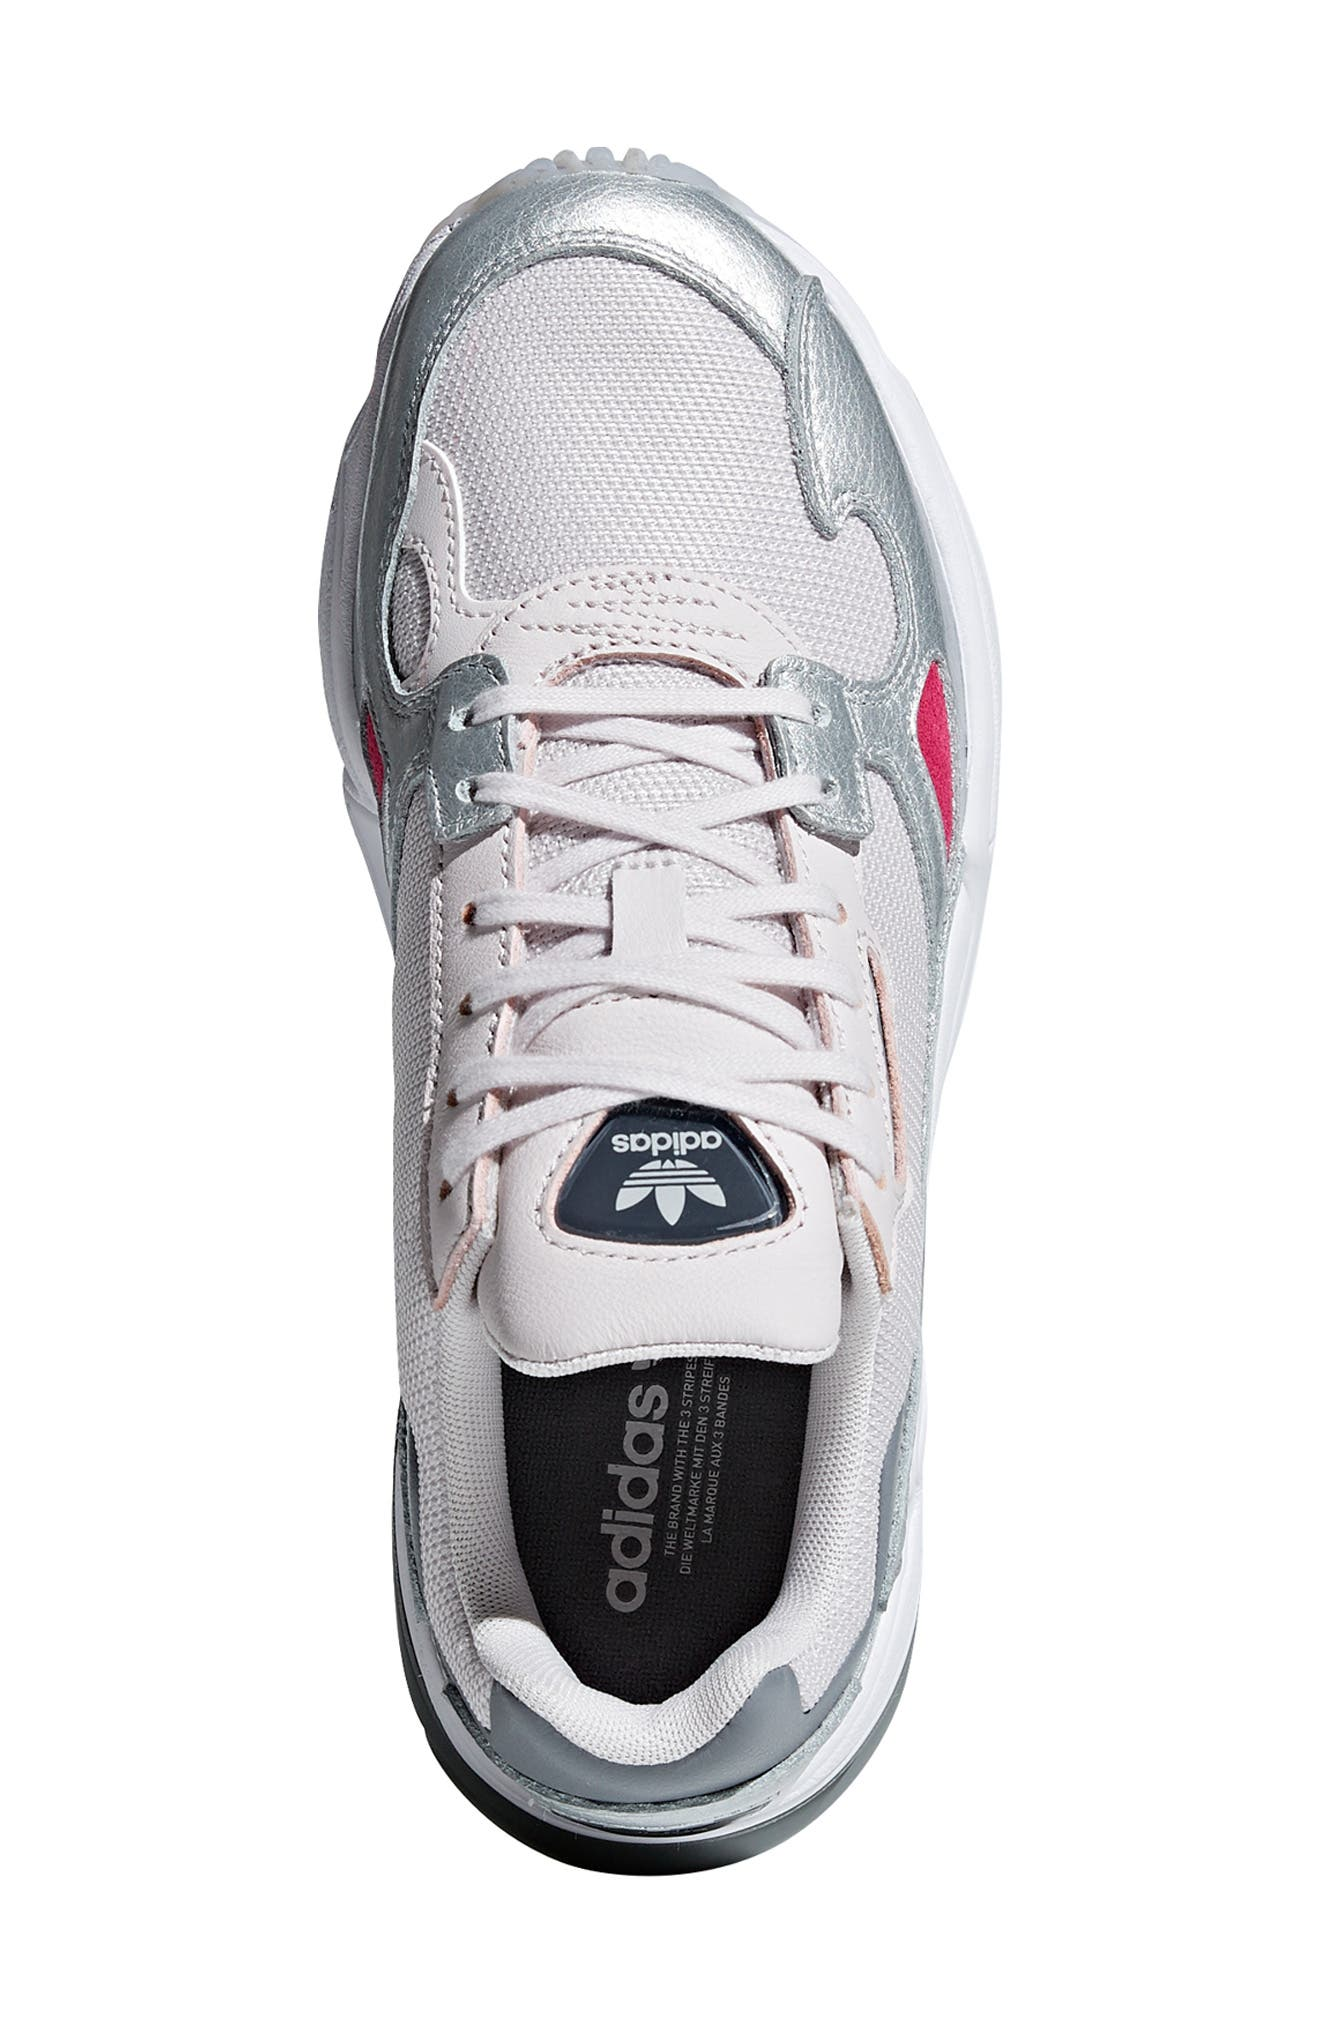 Falcon Sneaker,                             Alternate thumbnail 4, color,                             ORCHID TINT/ SILVER